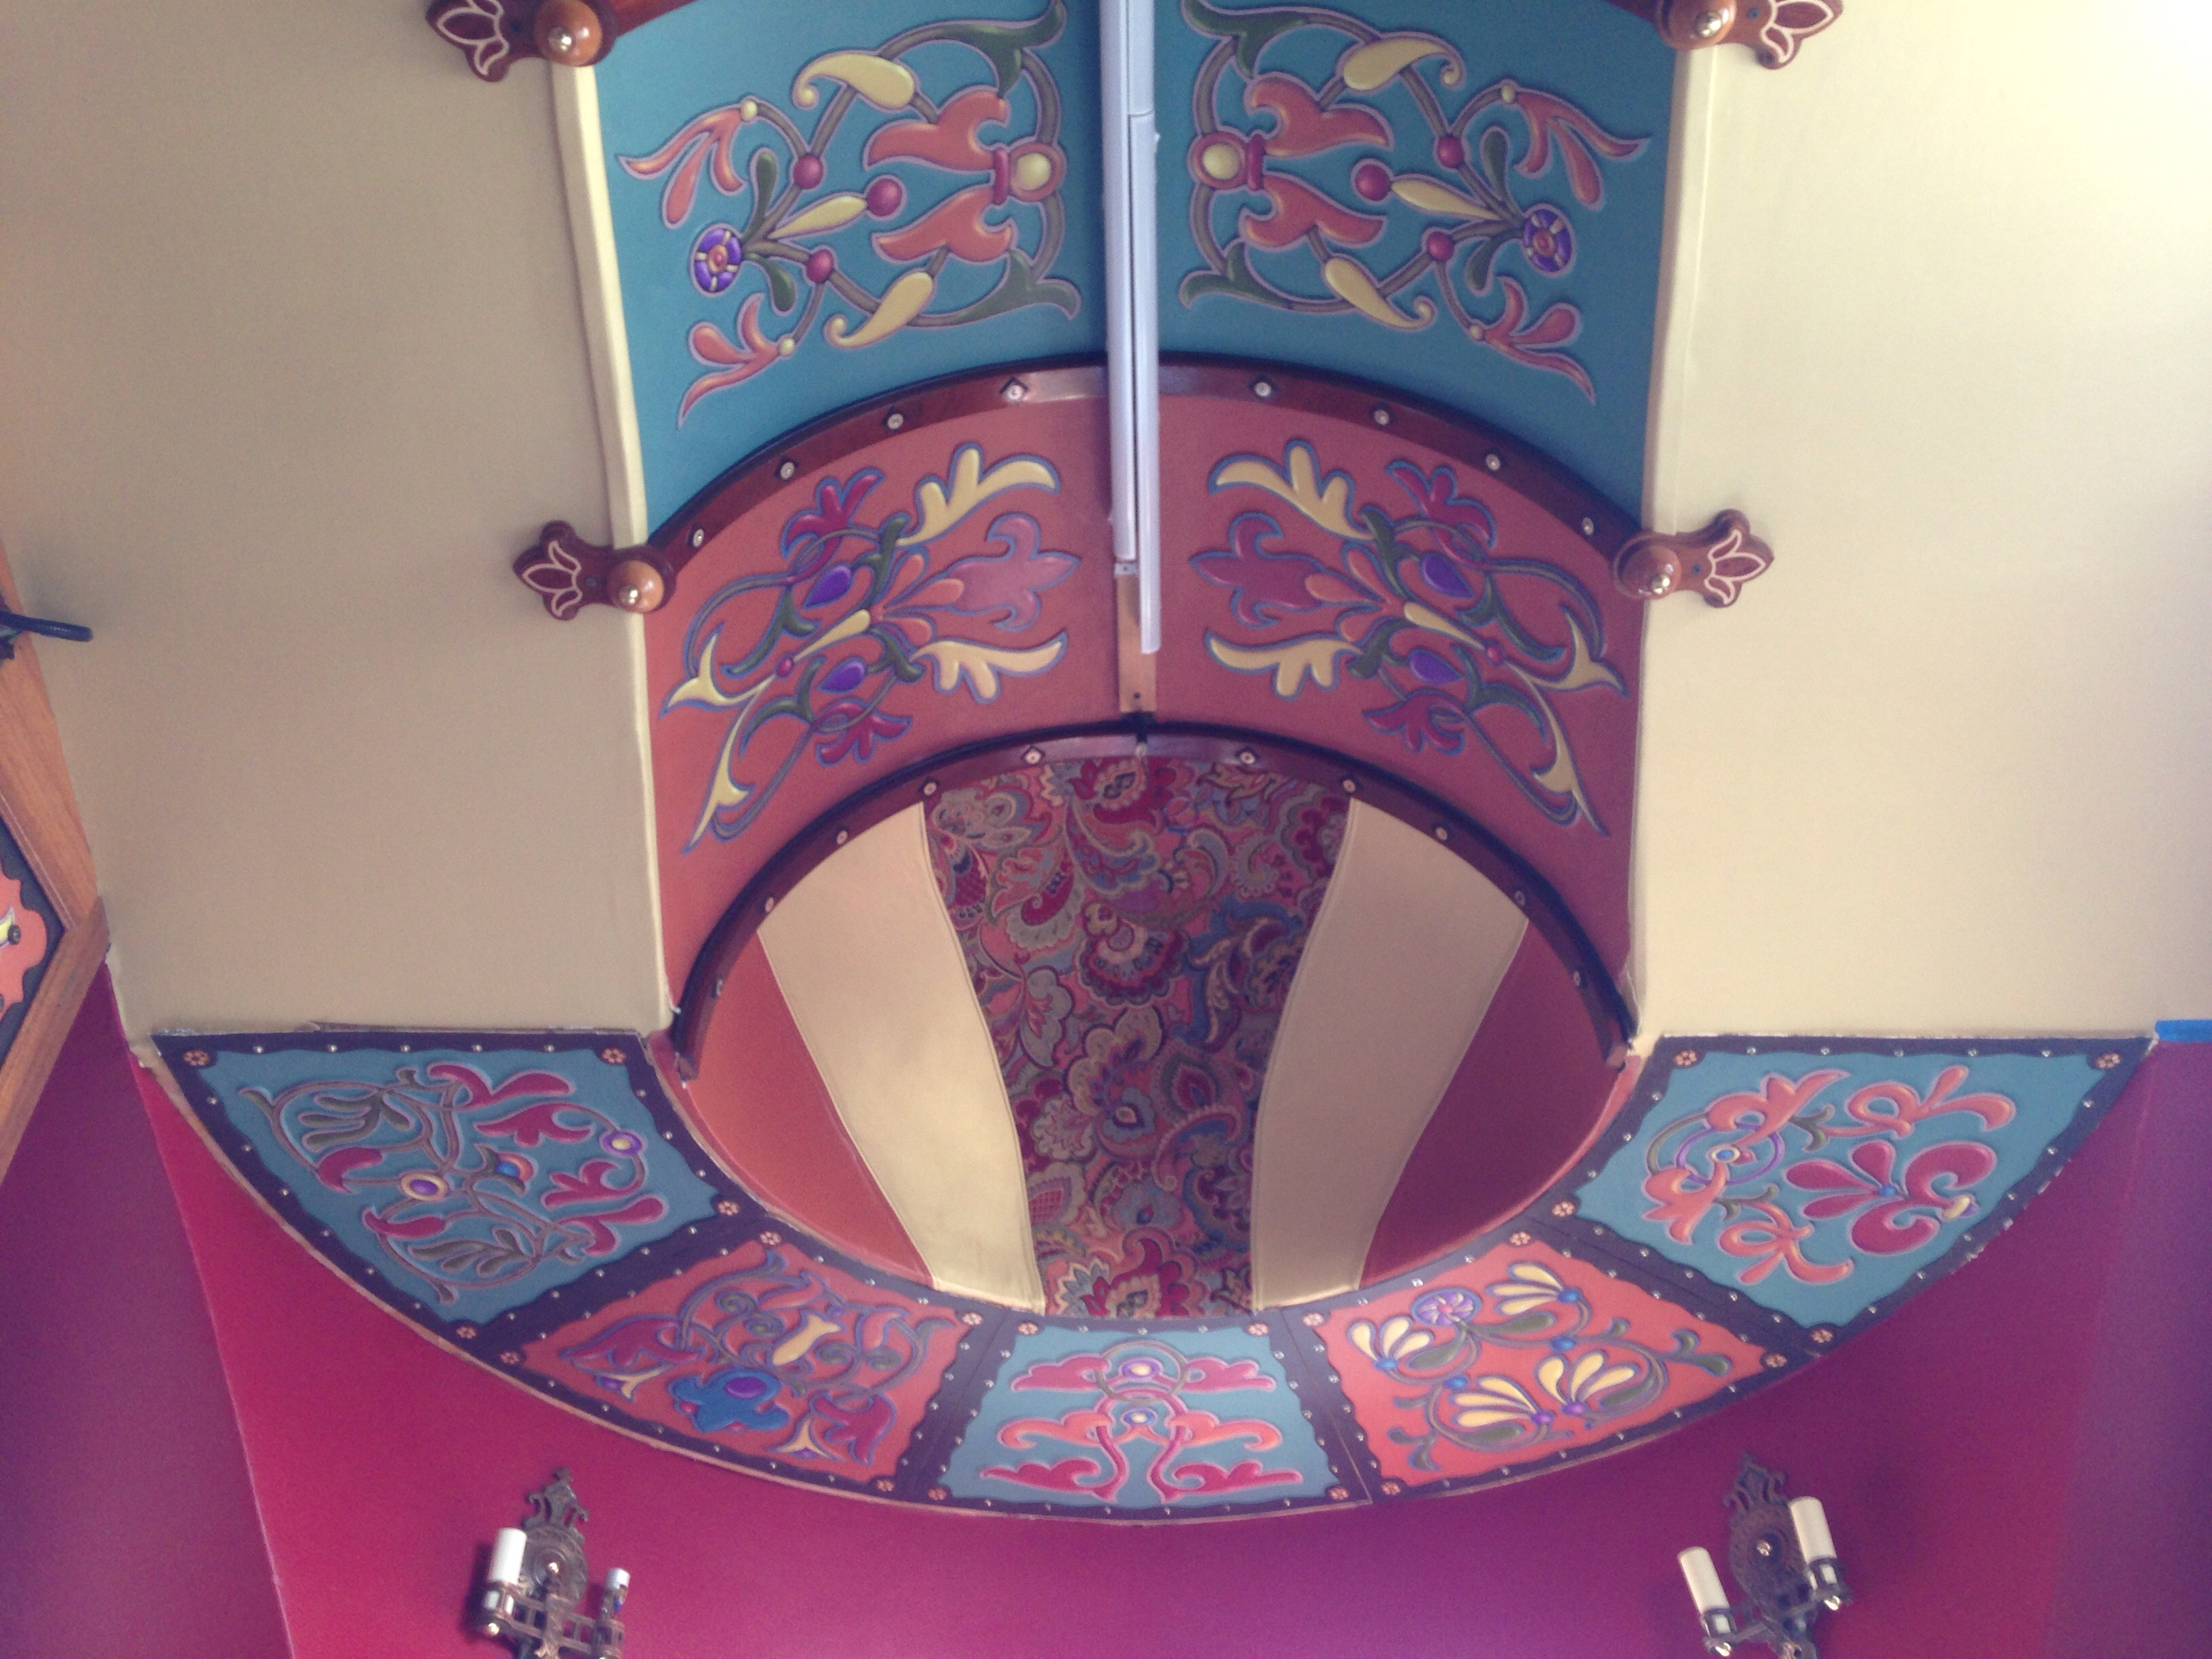 Ceiling in front of trailer